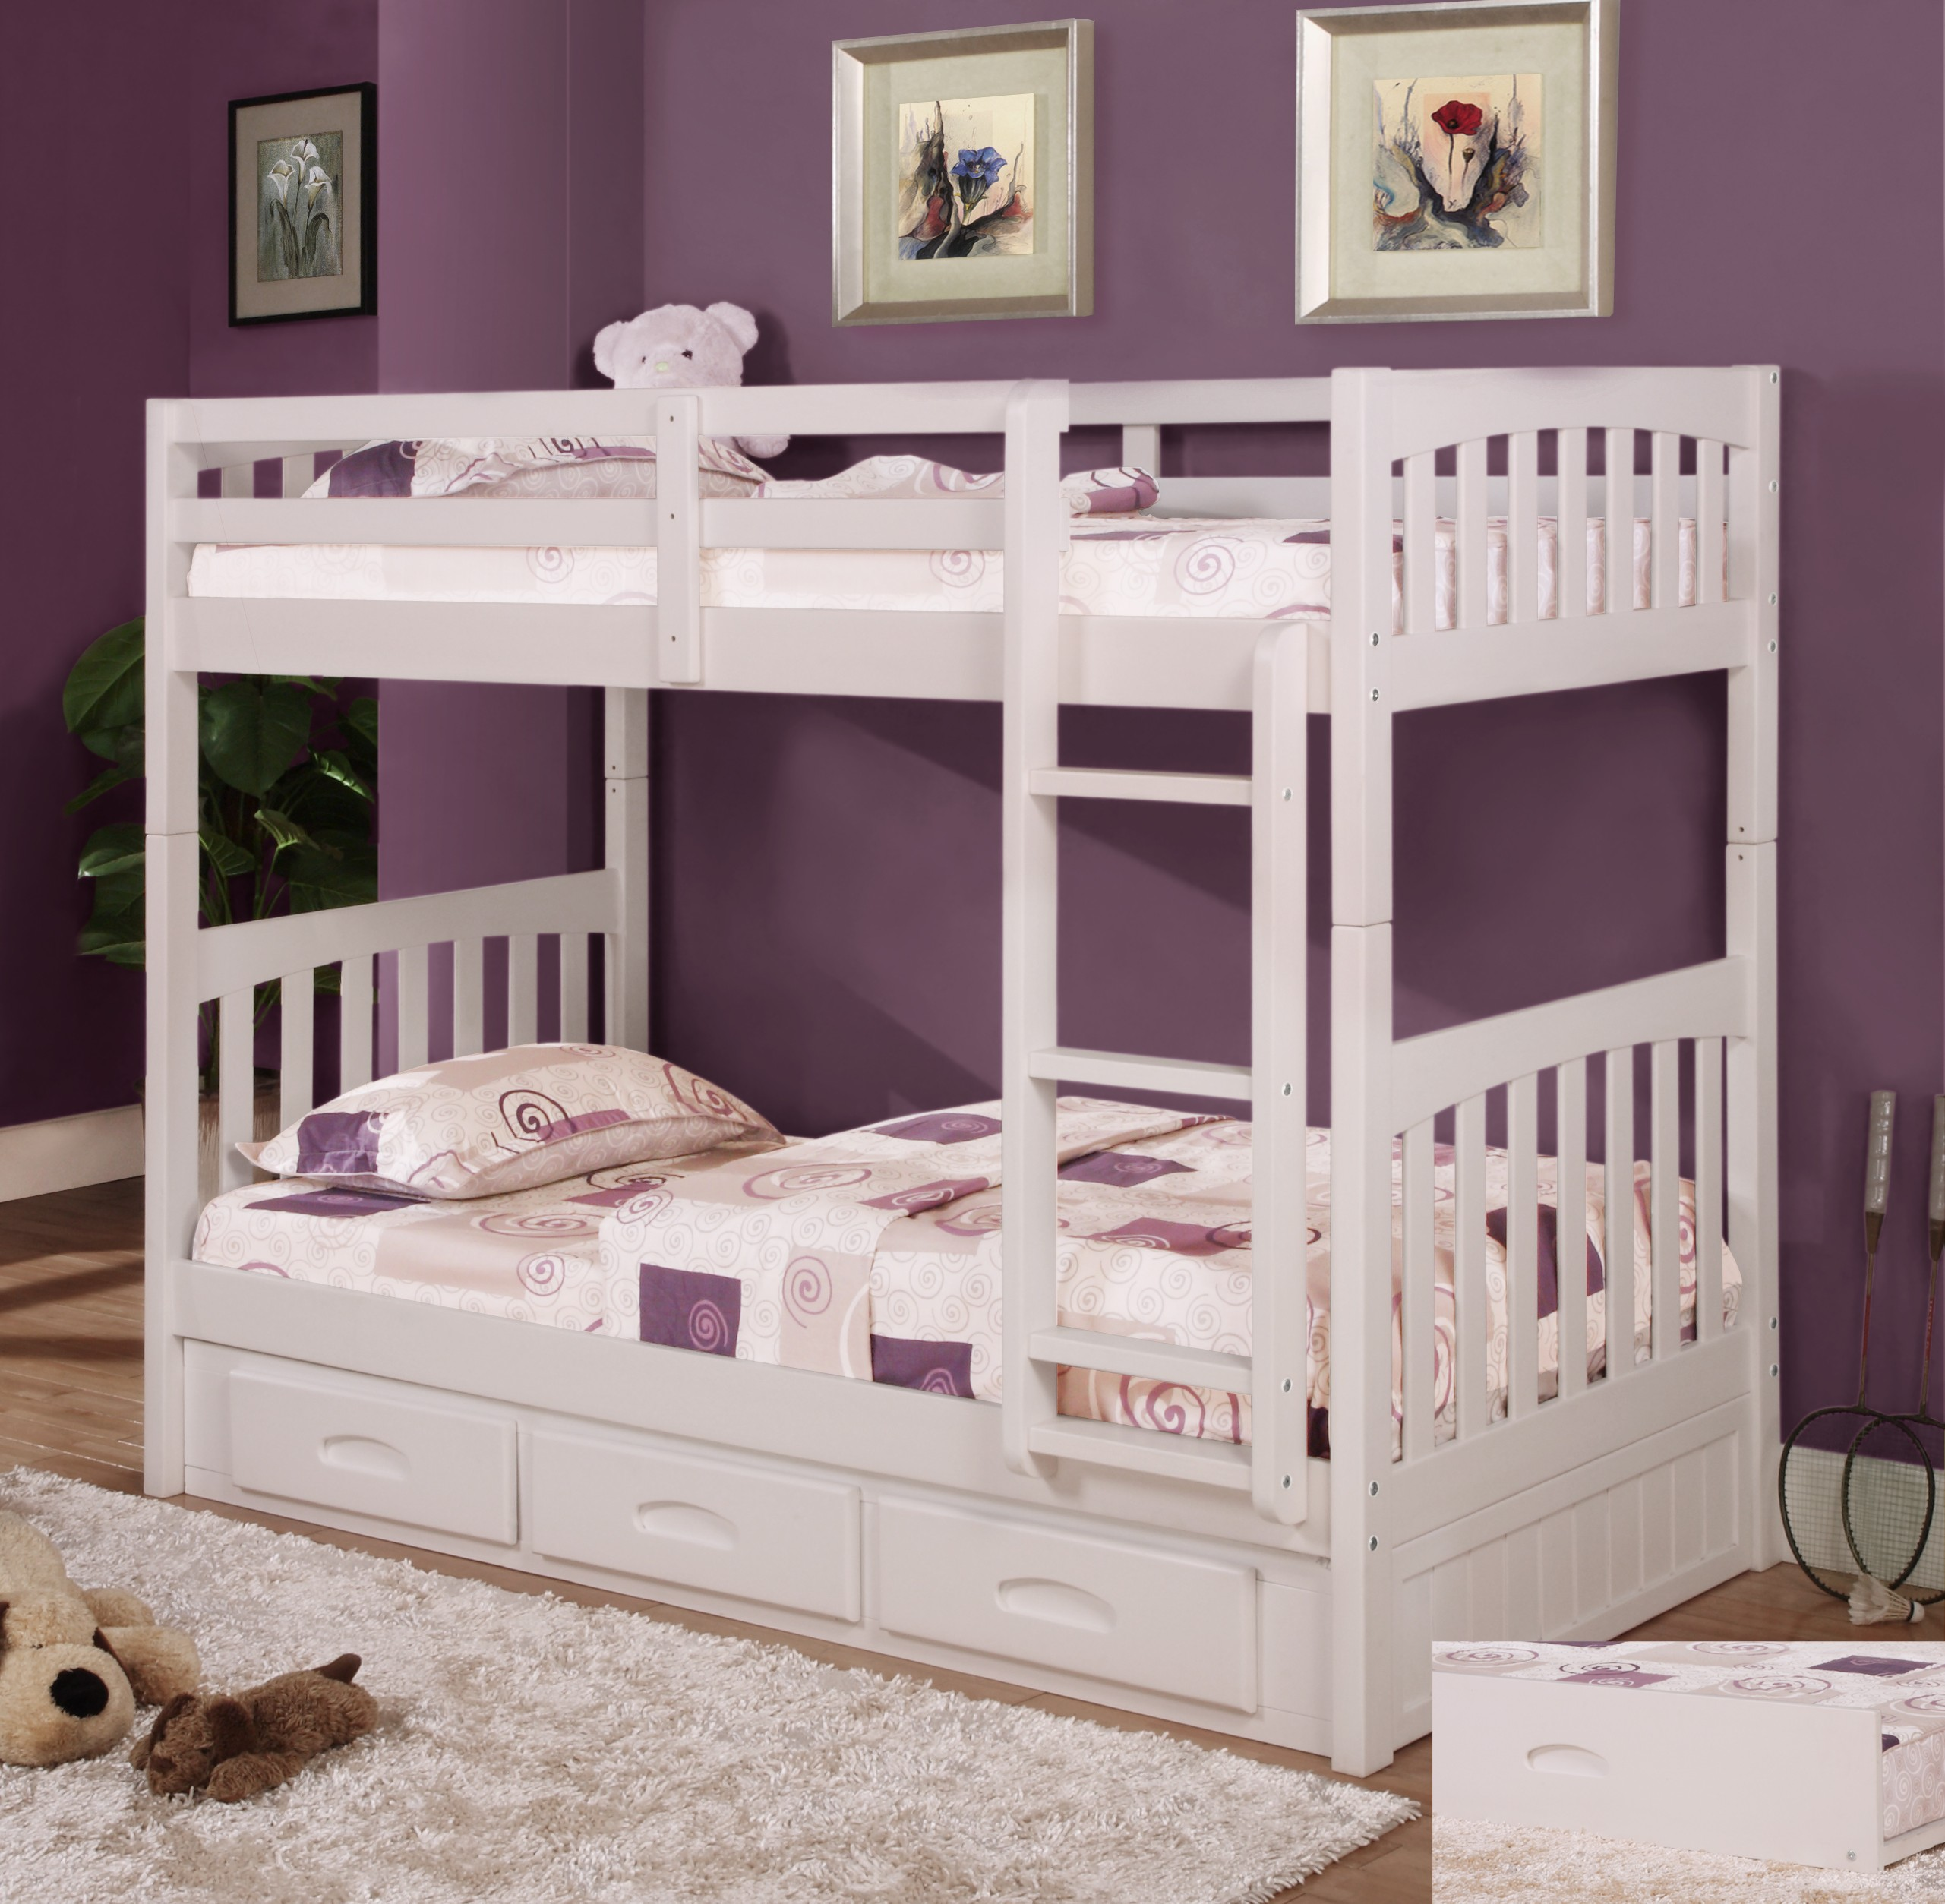 Twin loft bed with storage underneath - Bed Twins Pictures Wall Dools Pillows Blanket Rug Floor Boardwalk Twin Size Storage Loft Bed